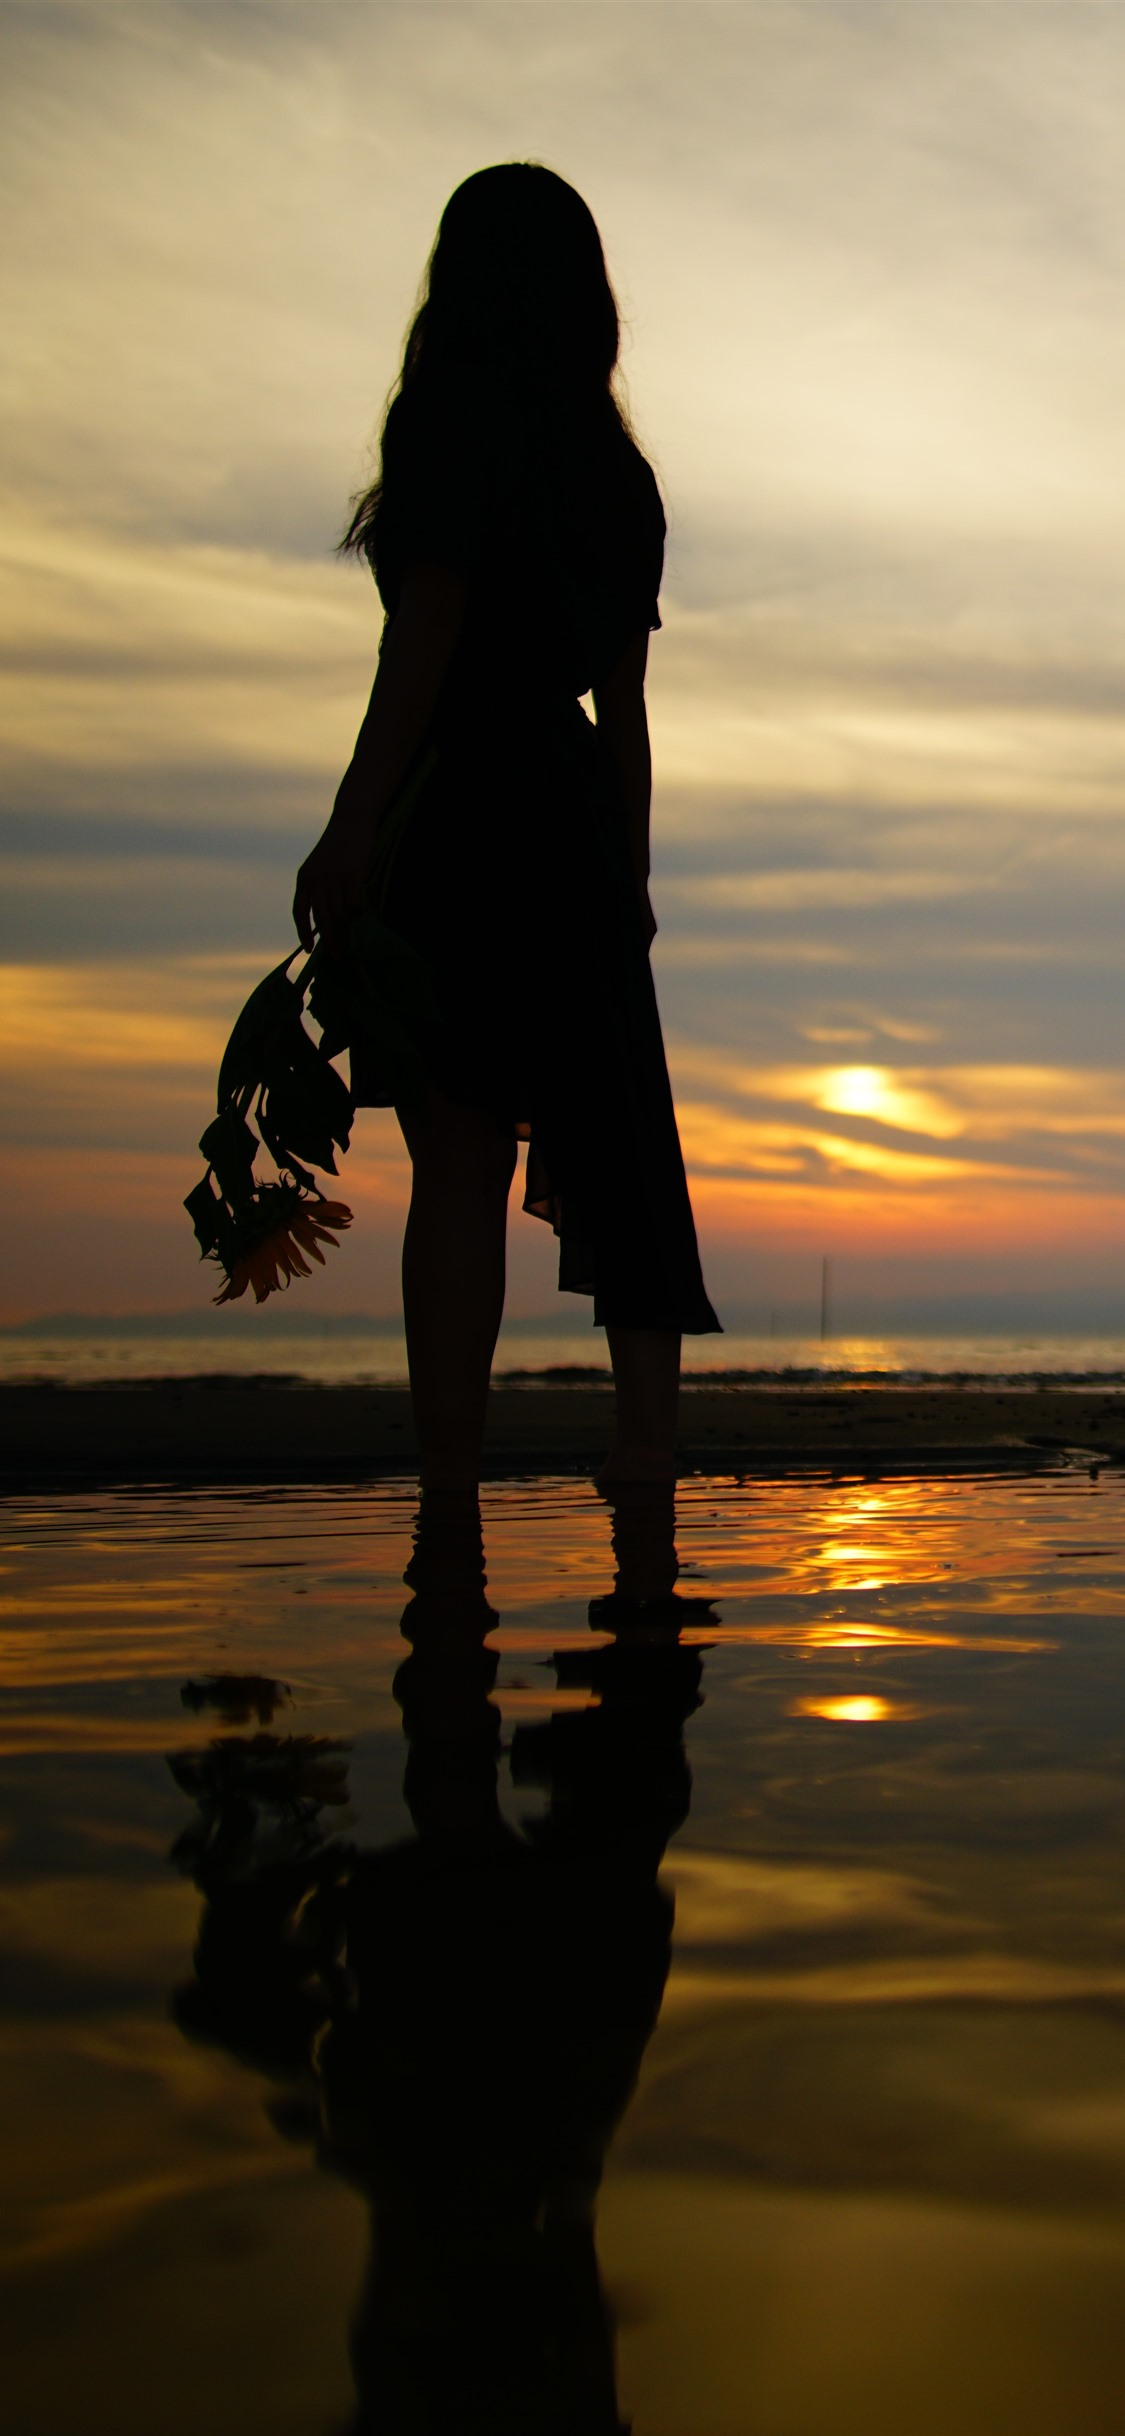 Girl Back View Silhouette Beach Sea Sunset 1242x2688 Iphone 11 Pro Xs Max Wallpaper Background Picture Image